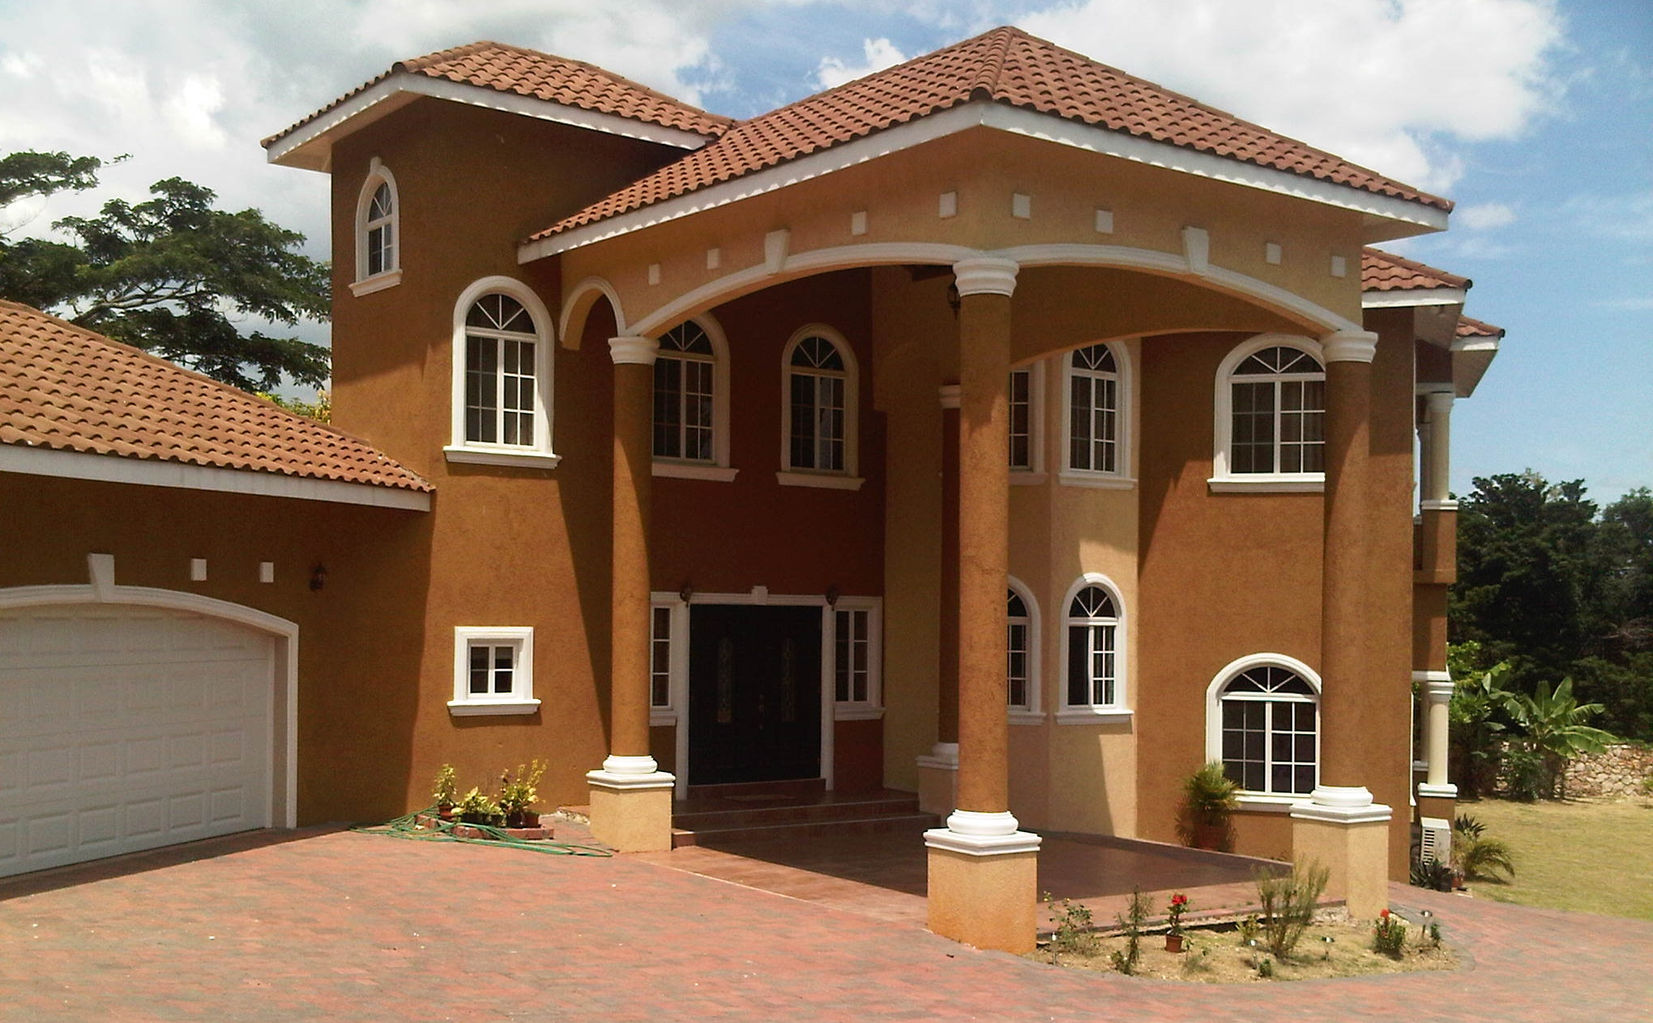 Jamaican Home Designs : Jamaica home designs and construction company, Project management, 3d ...